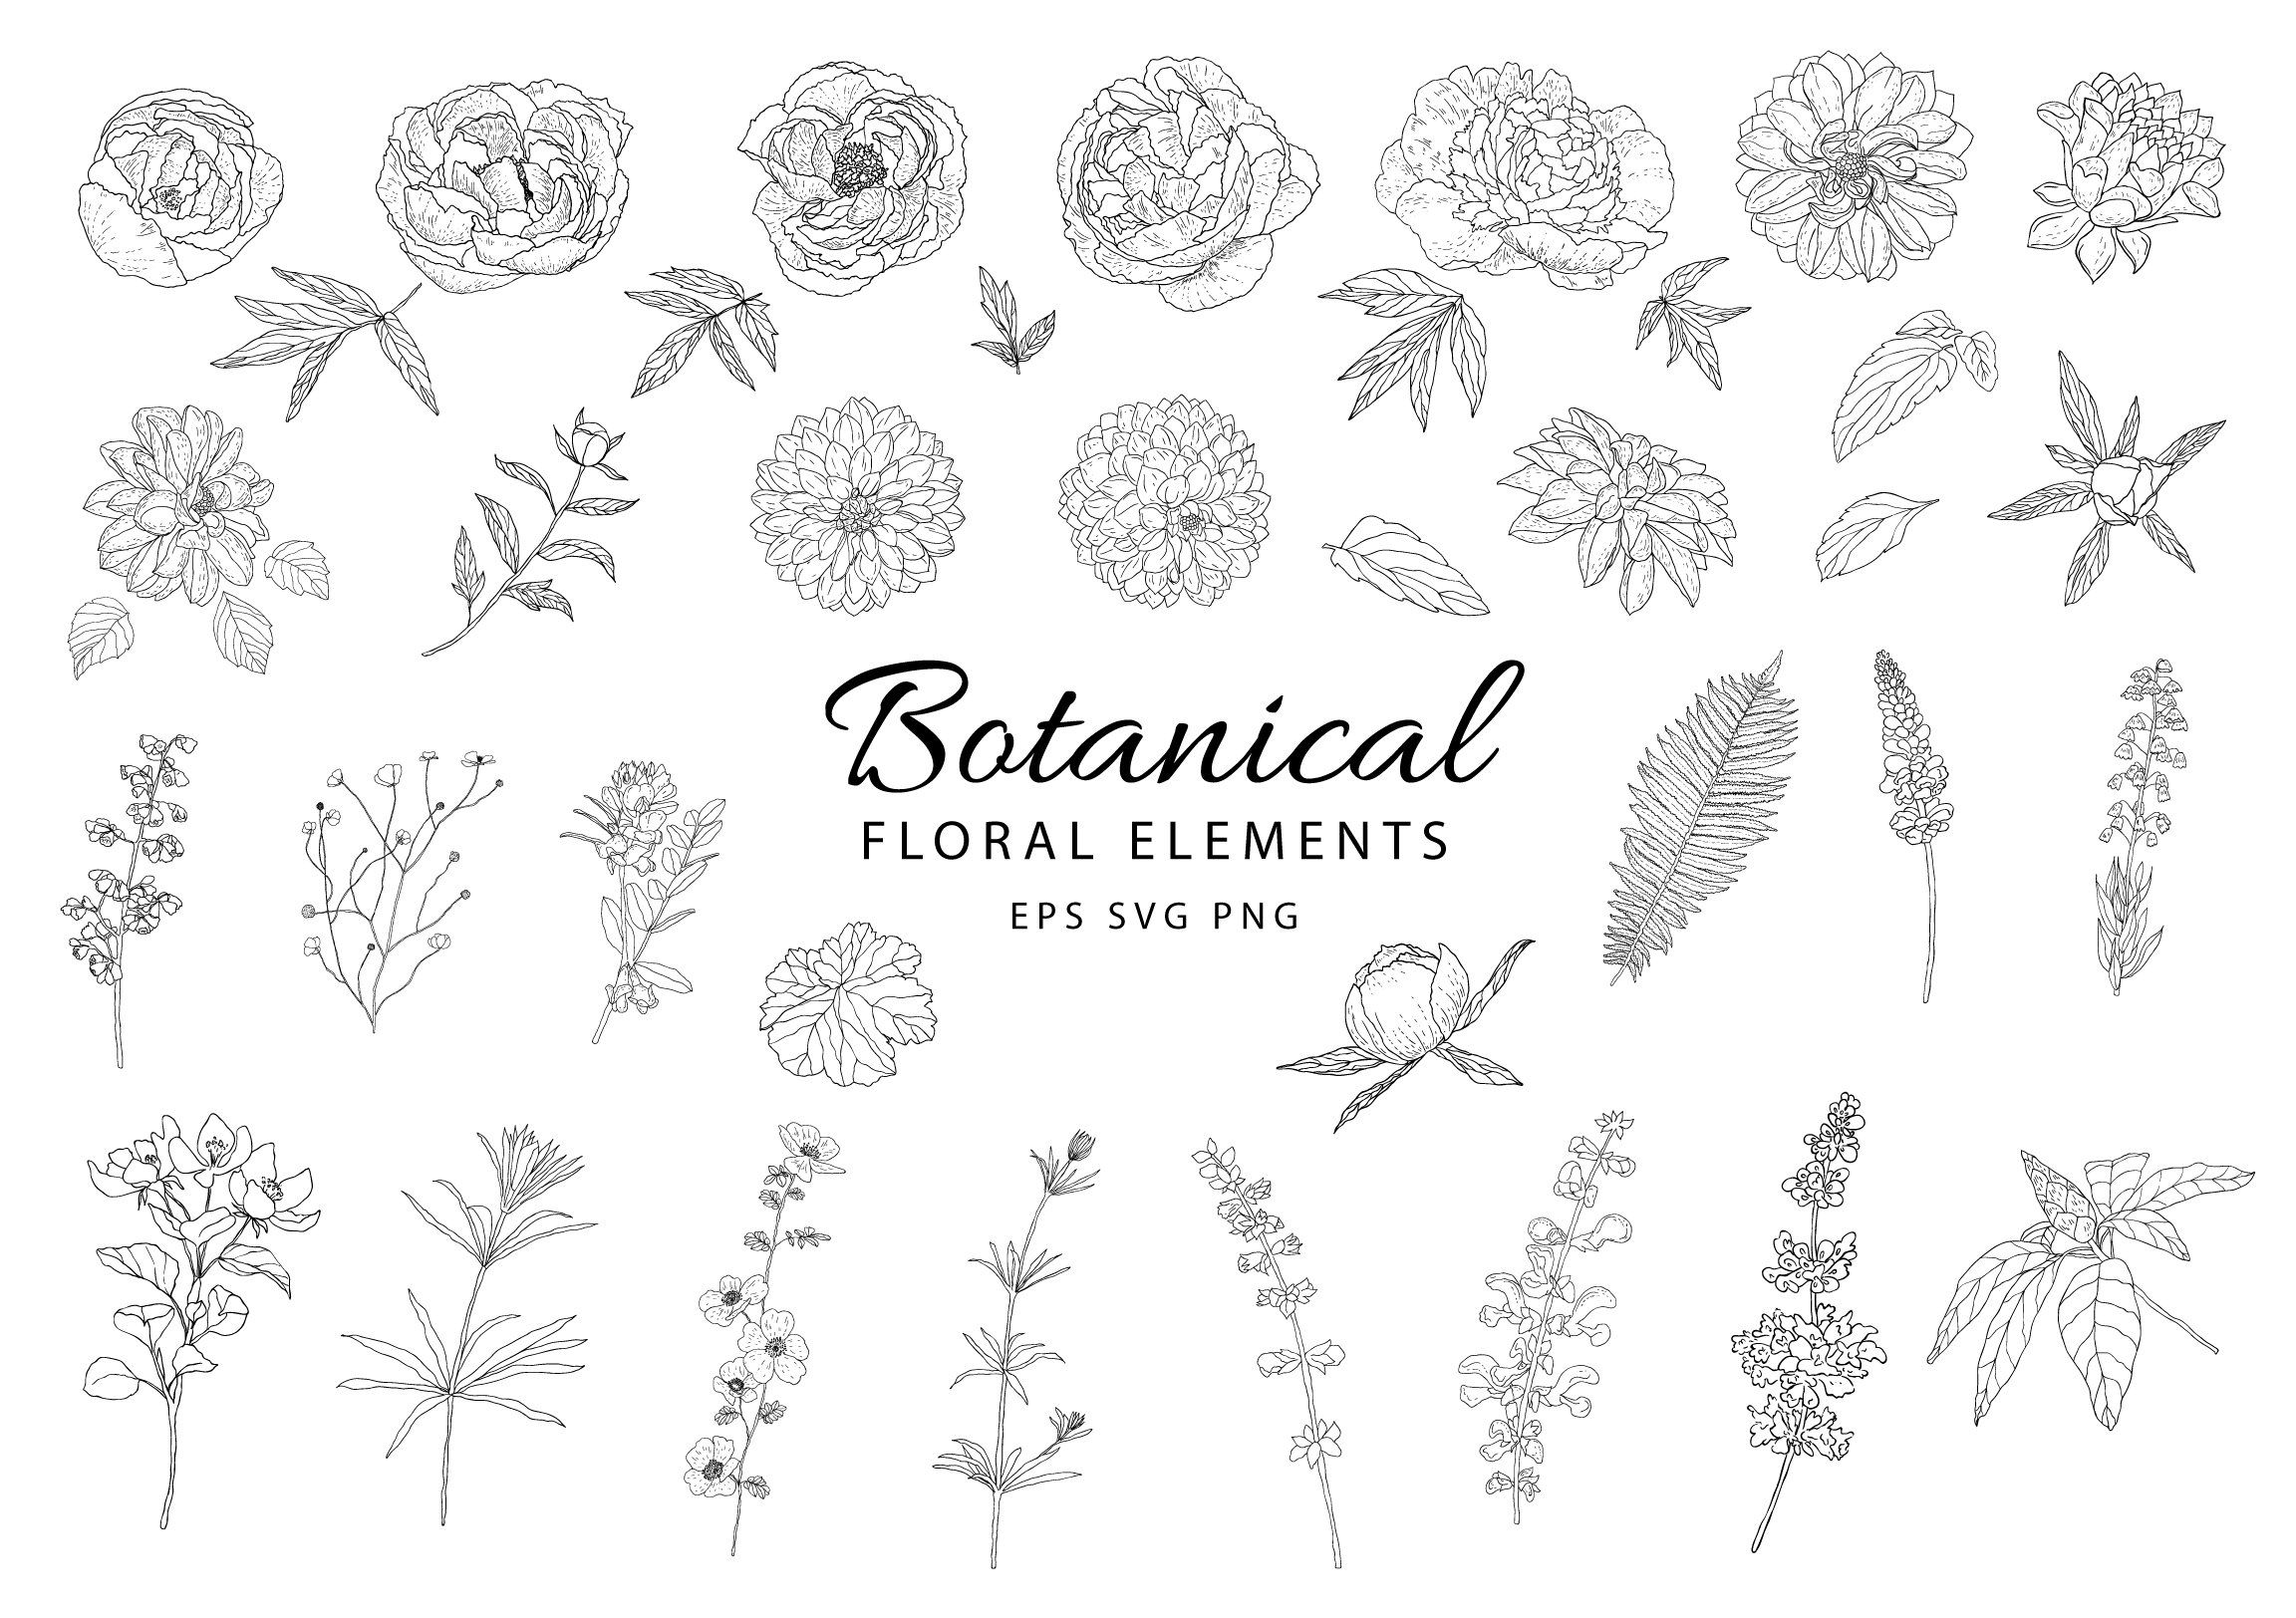 Botanical Clipart Hand Drawn Floral Leaves Peony Dahlia Flower Wedding Foliage Branch Spring Decorate Collection Vector Set Png Eps Svg How To Draw Hands Book Cover Invitation Sell My Art